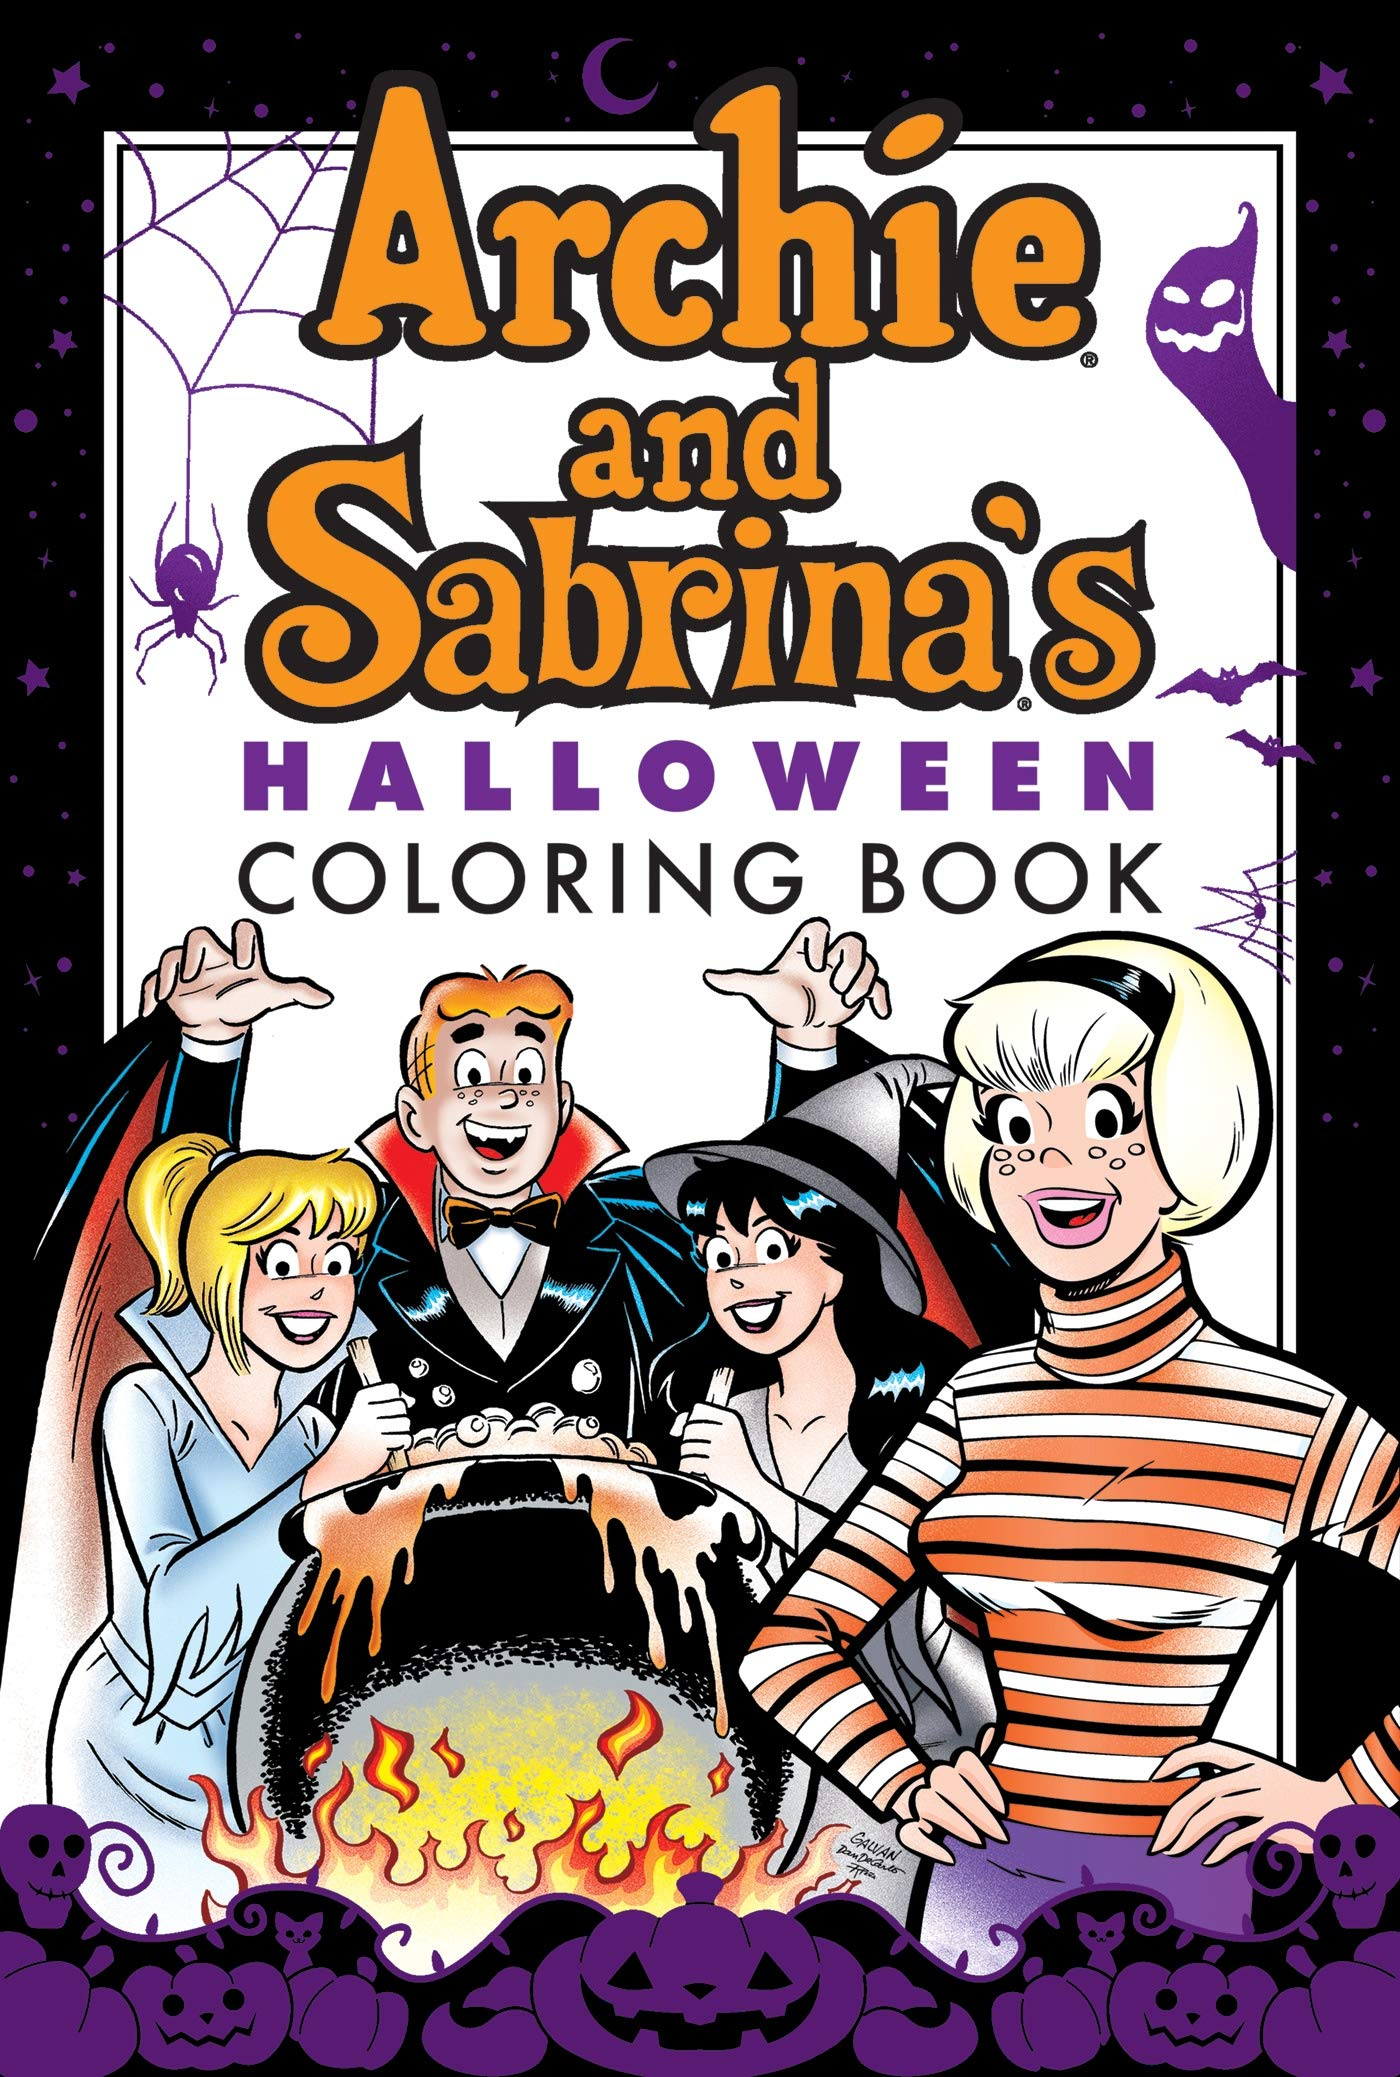 Amazon.com: Archie & Sabrina's Halloween Coloring Book ...